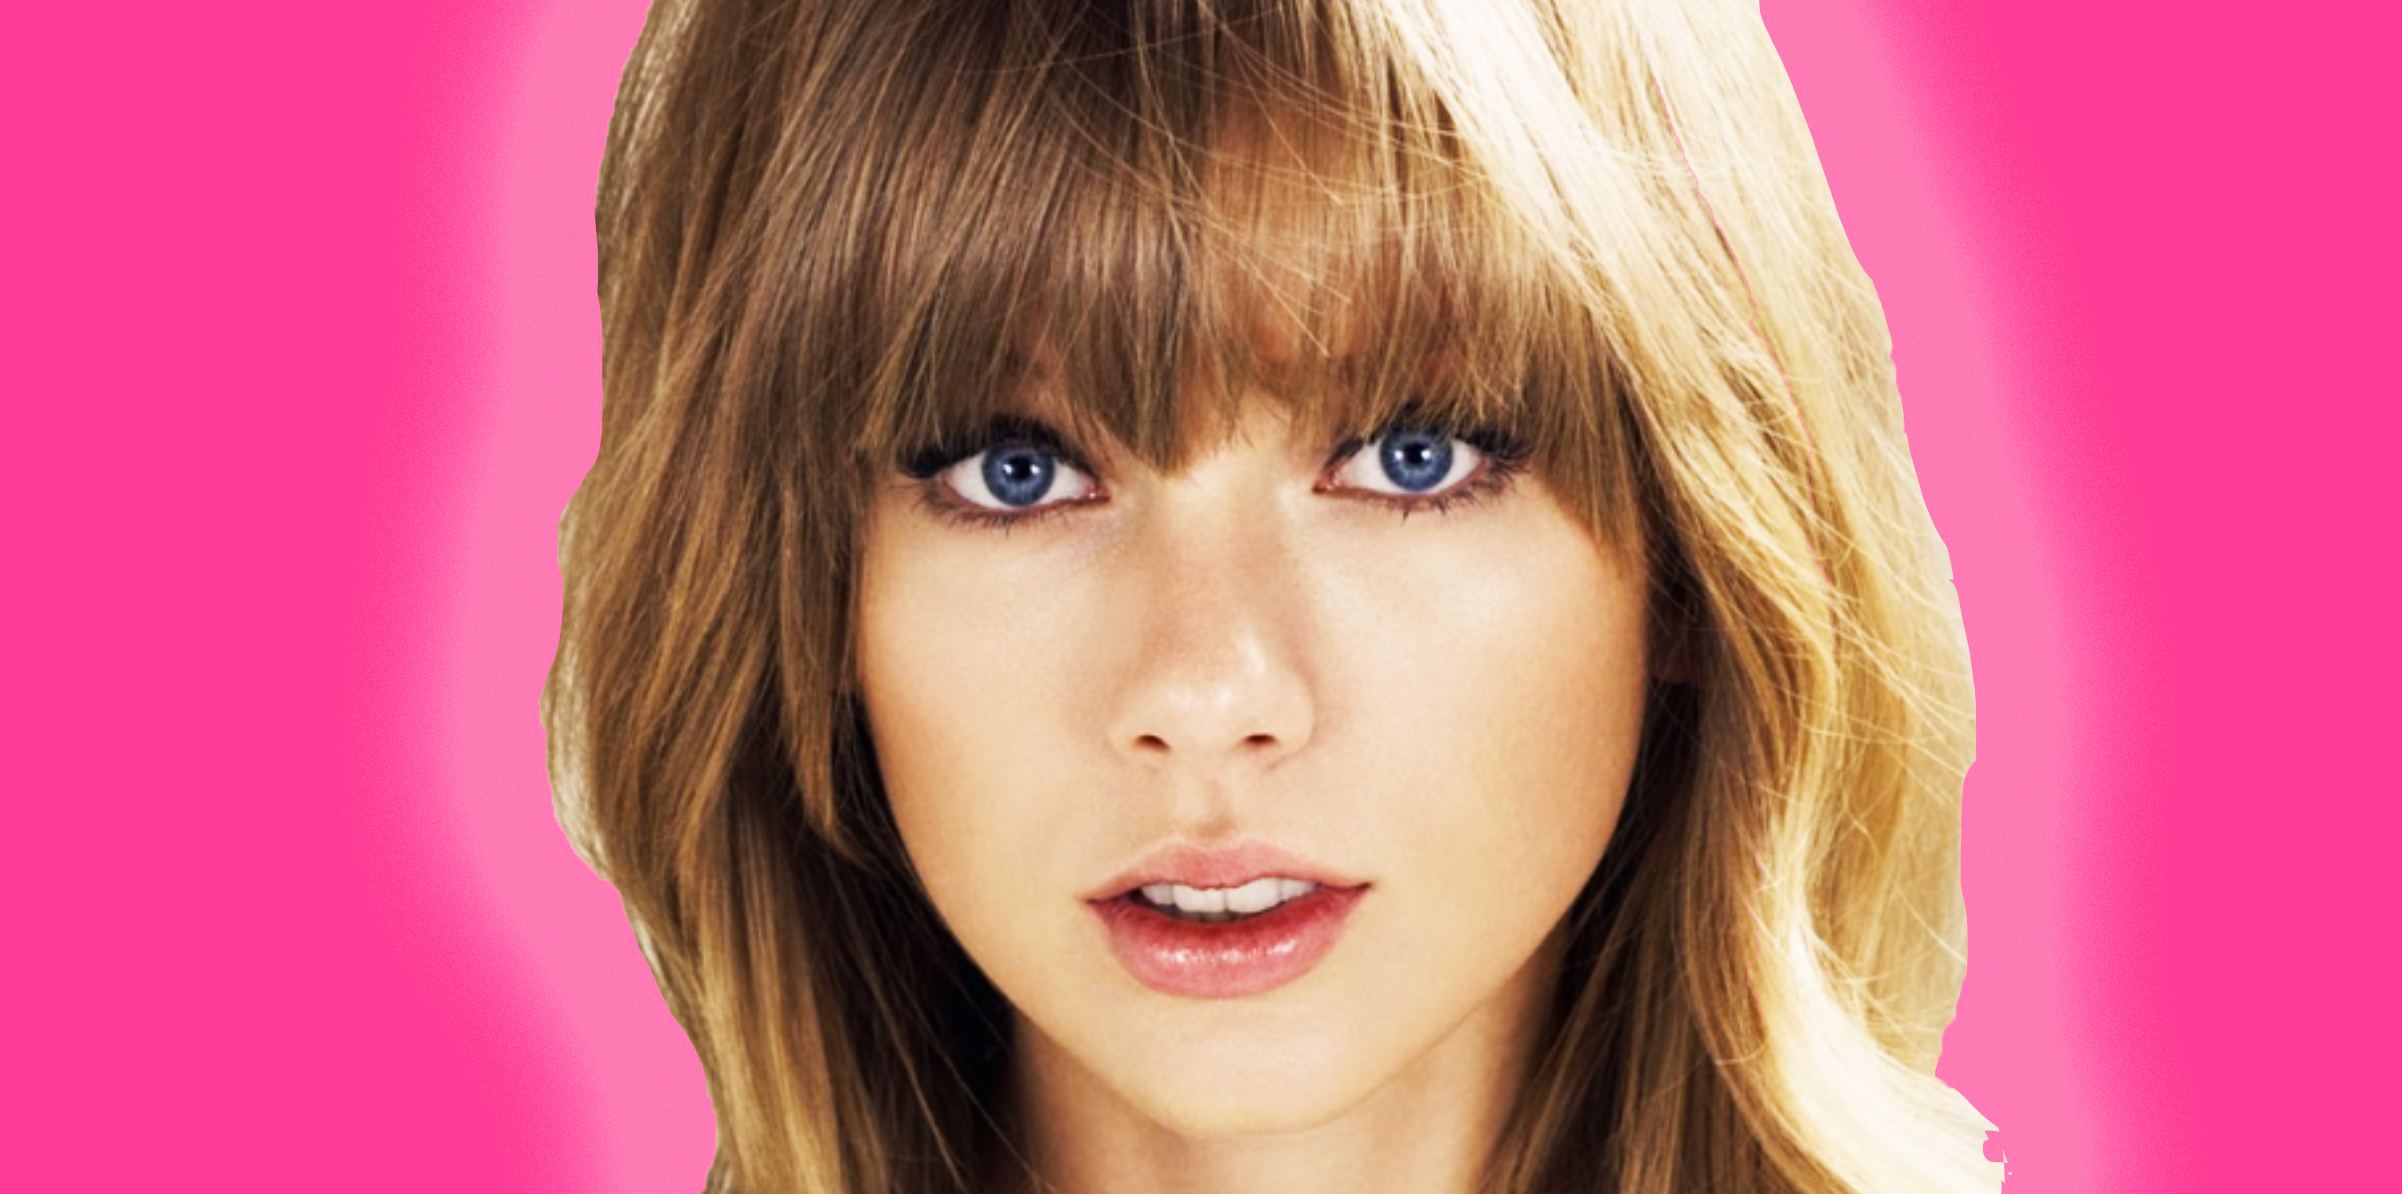 Taylor Swift, ps, ps Taylor swift, new york, country music, singer, pop music, celebrity, shocked, mysterious